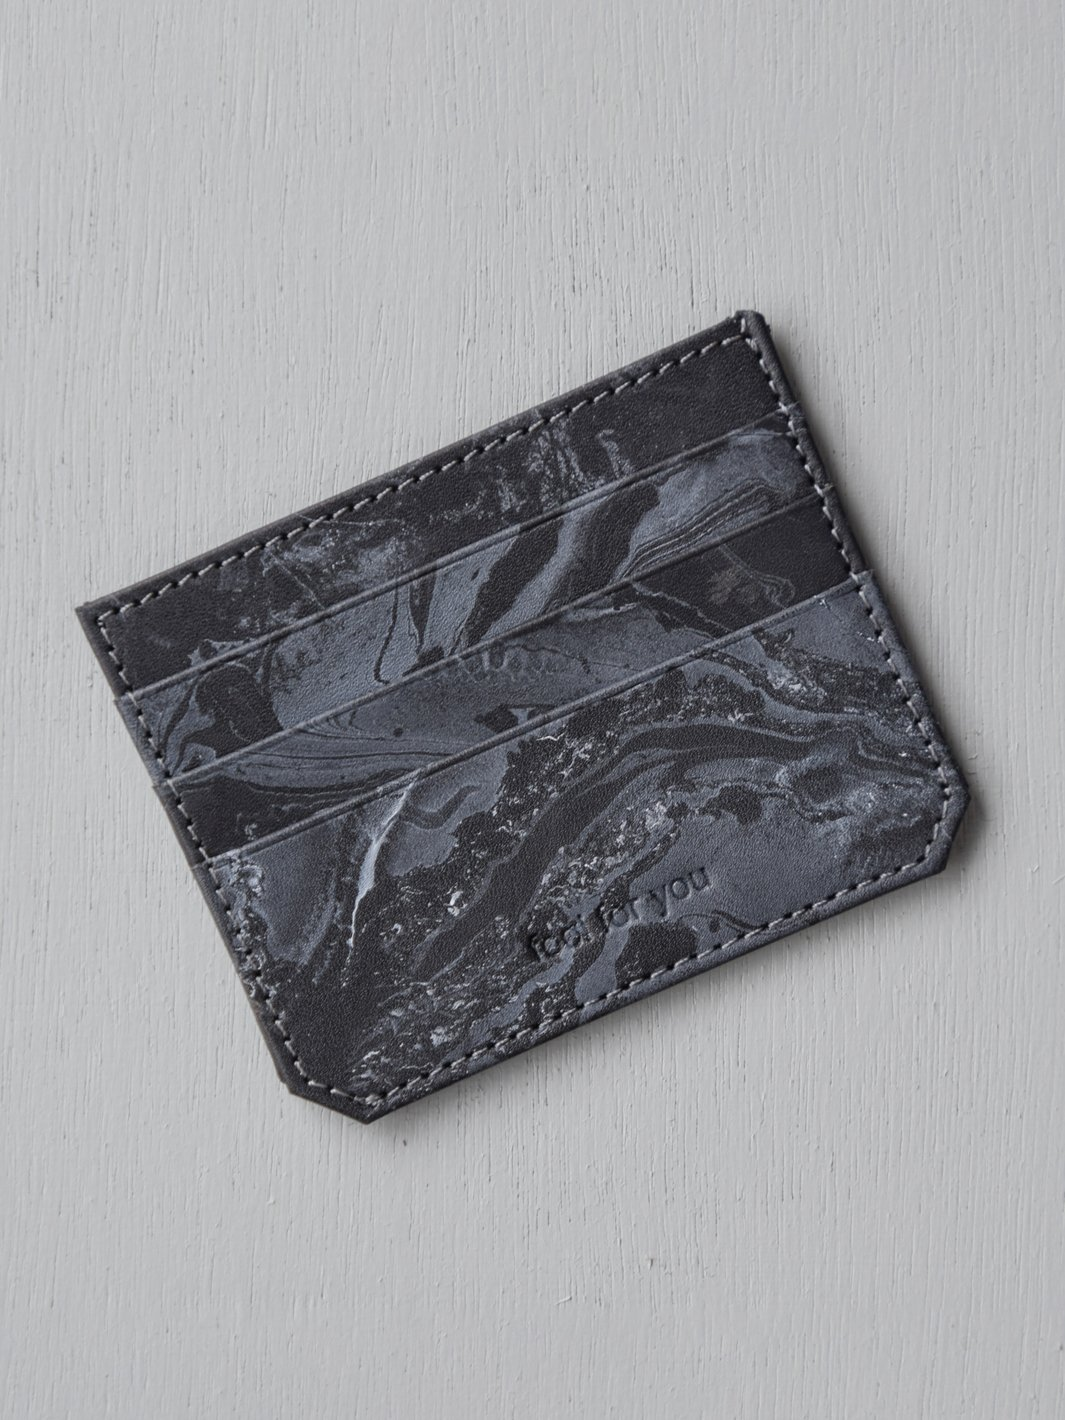 Our most compact wallet, Ara comes with three slots on either side for your cards and a compartment in between if you've got more to store.